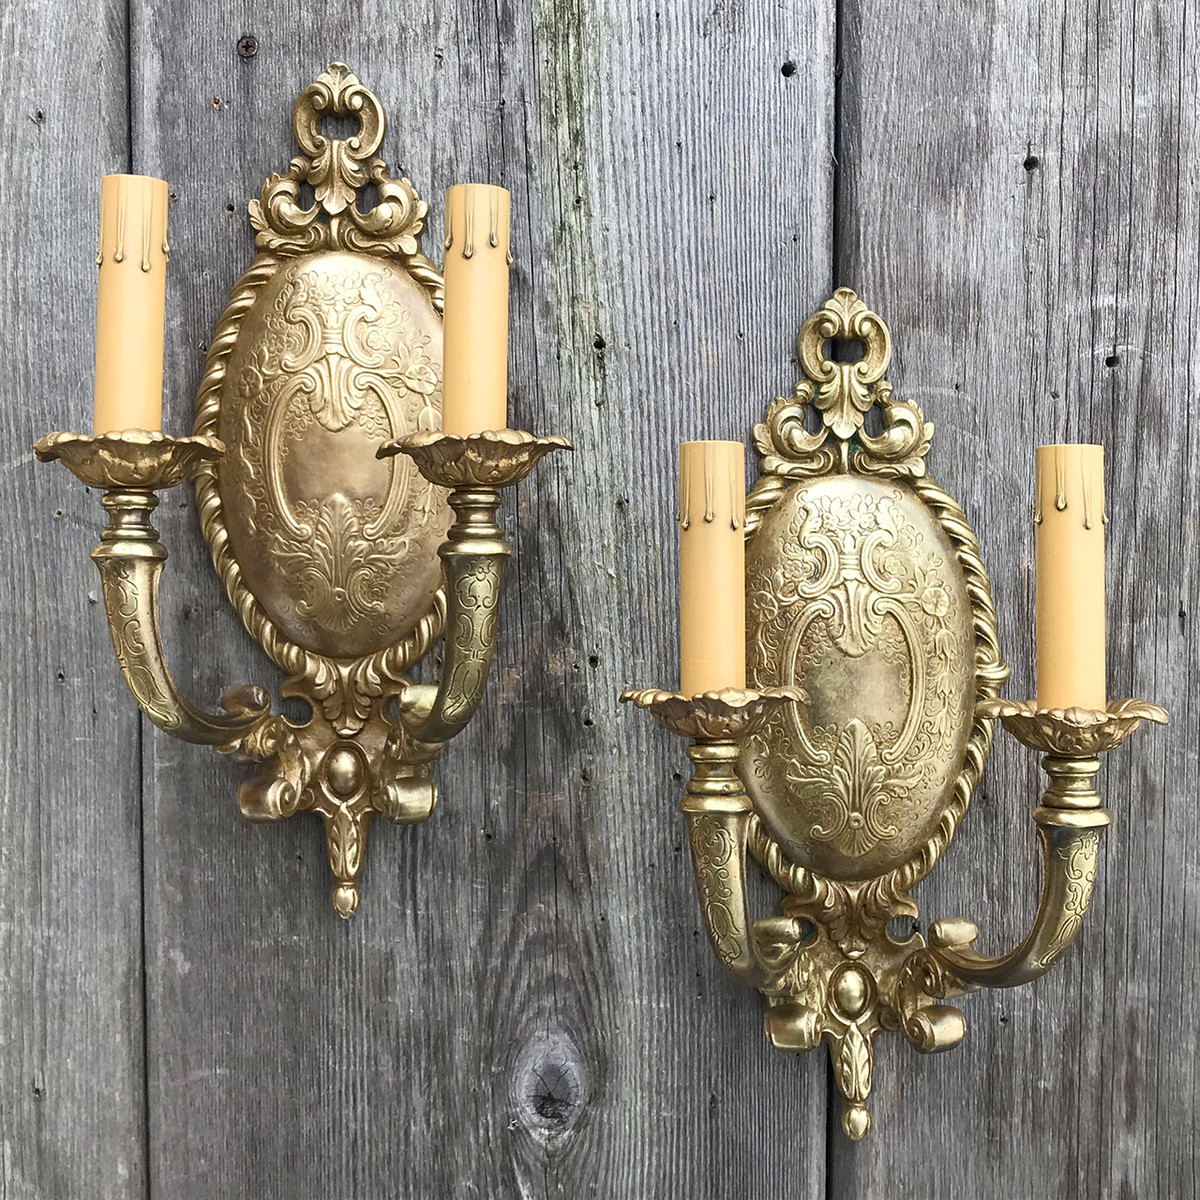 L19040 - Pair of Antique French Candle Sconces